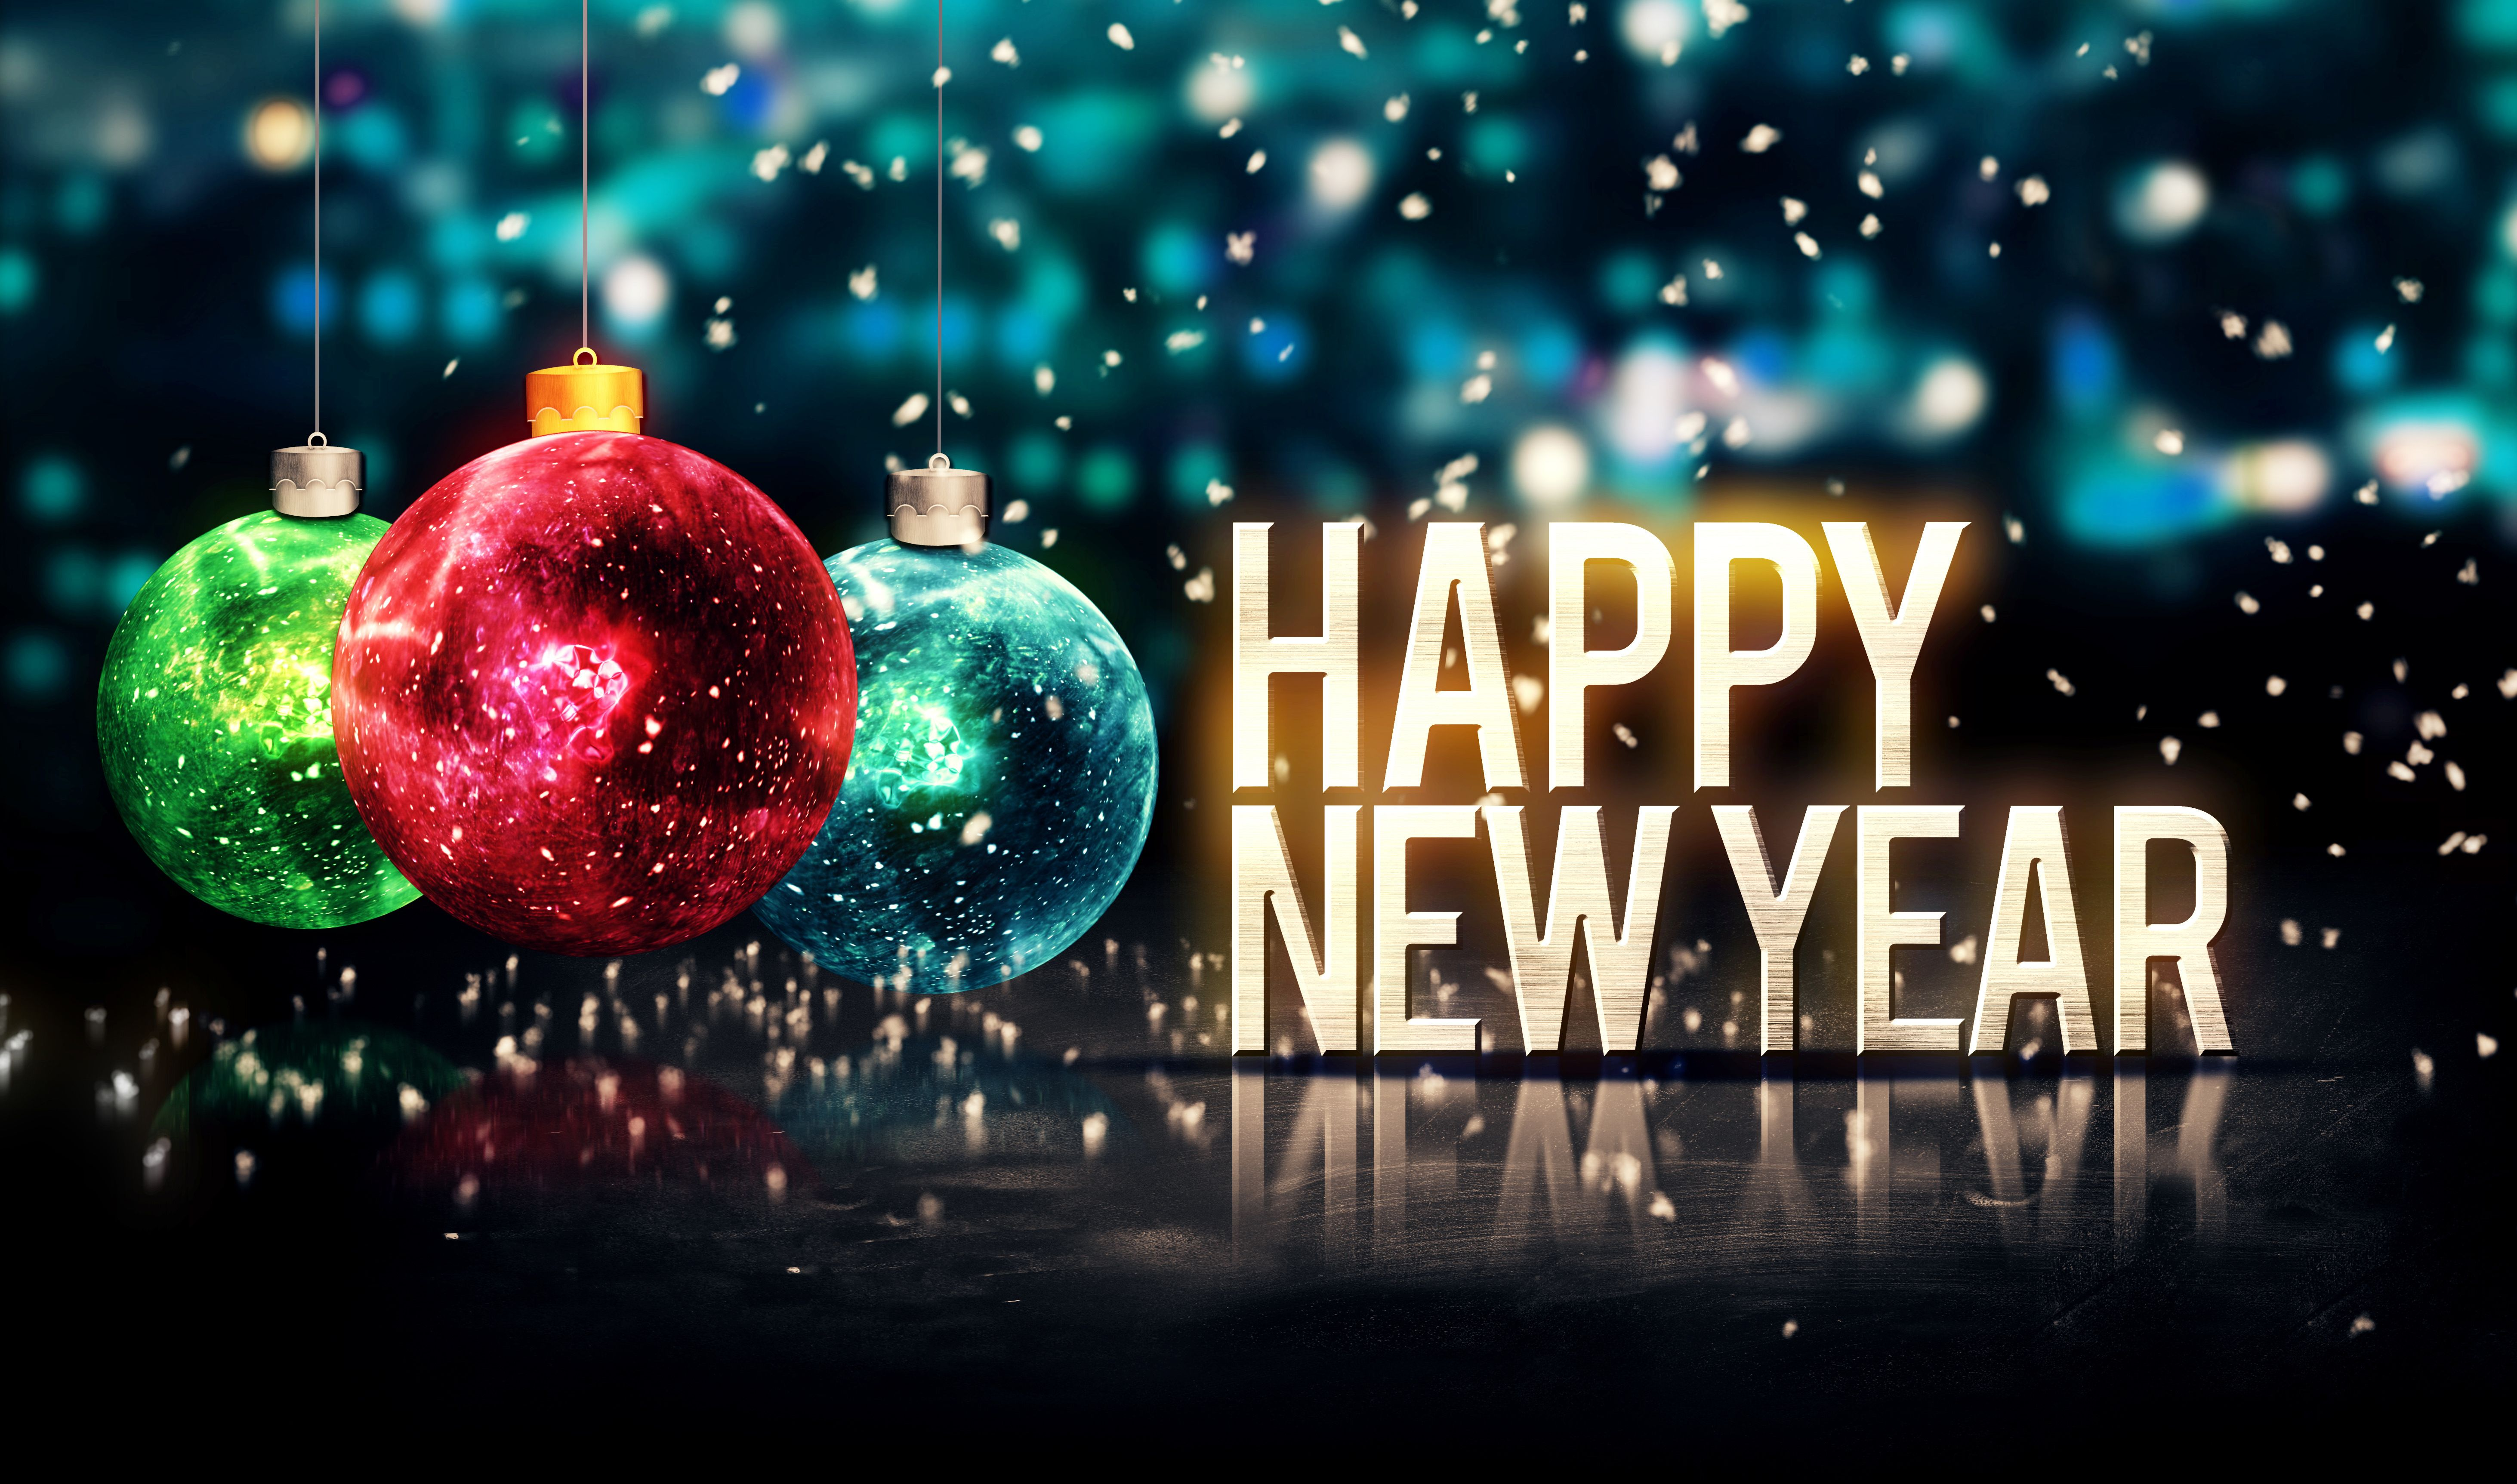 beautiful happy new year wallpapers hd 30